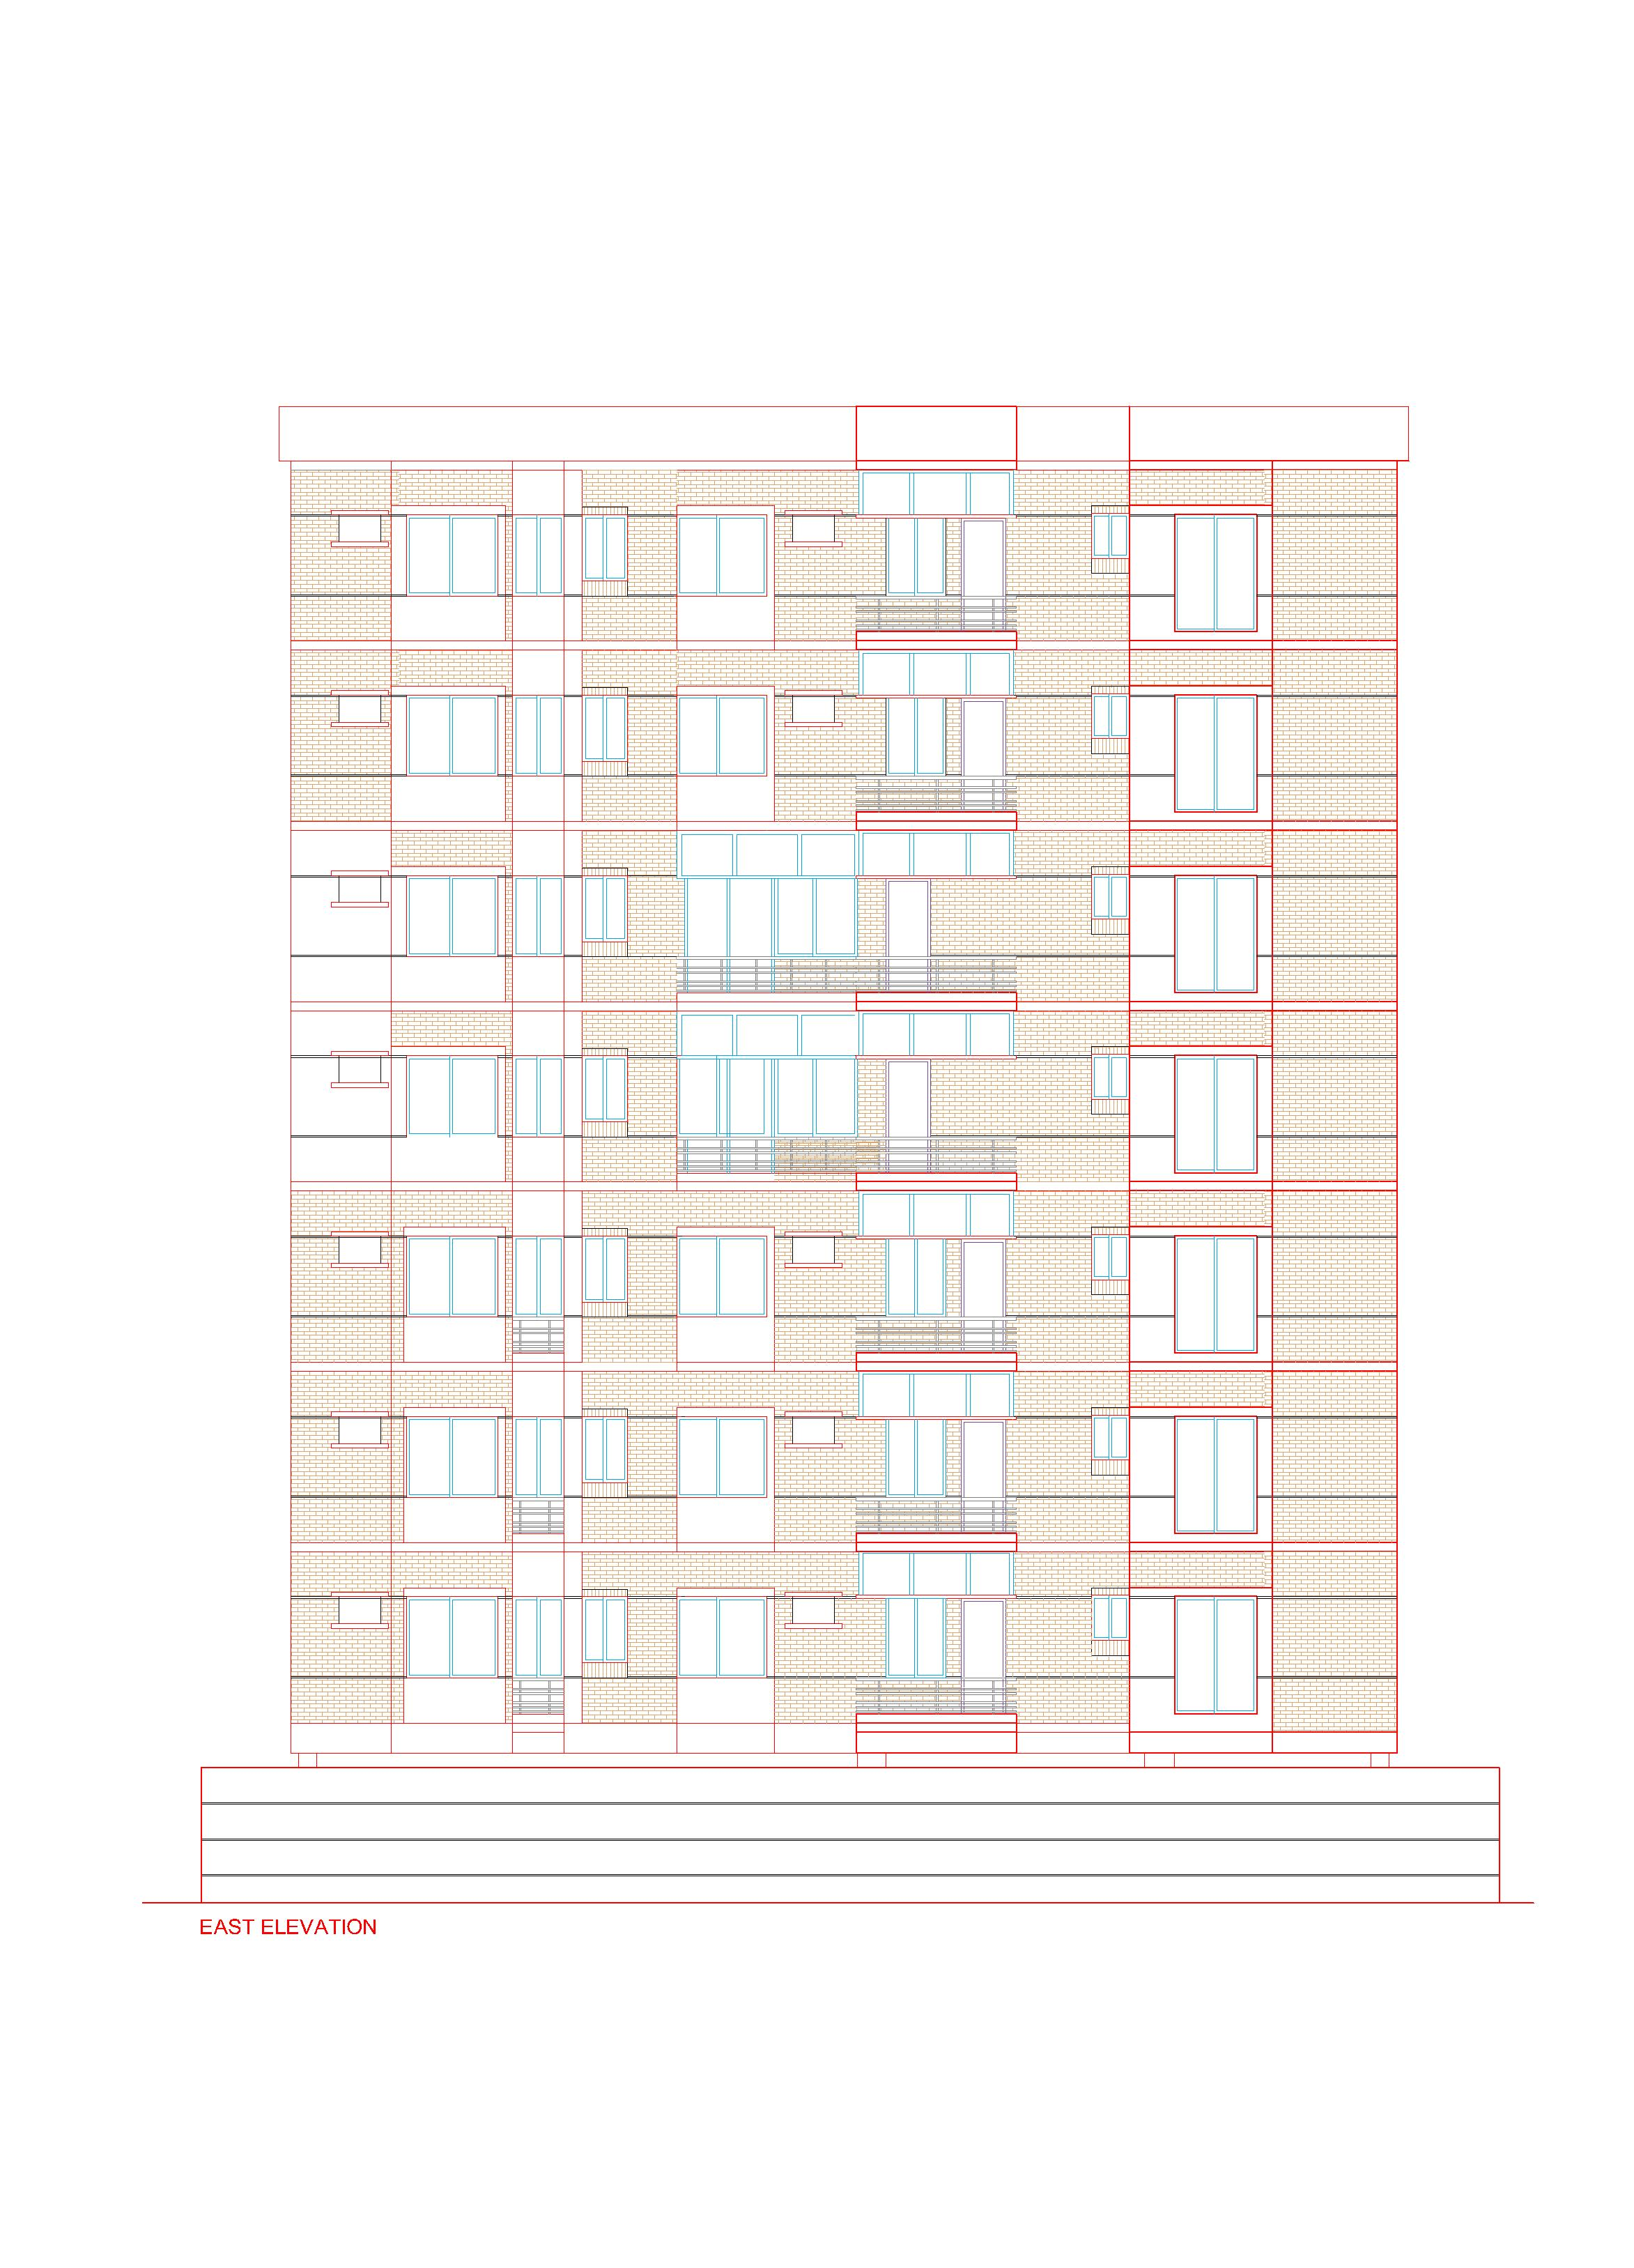 ReDrawing your building design/plan